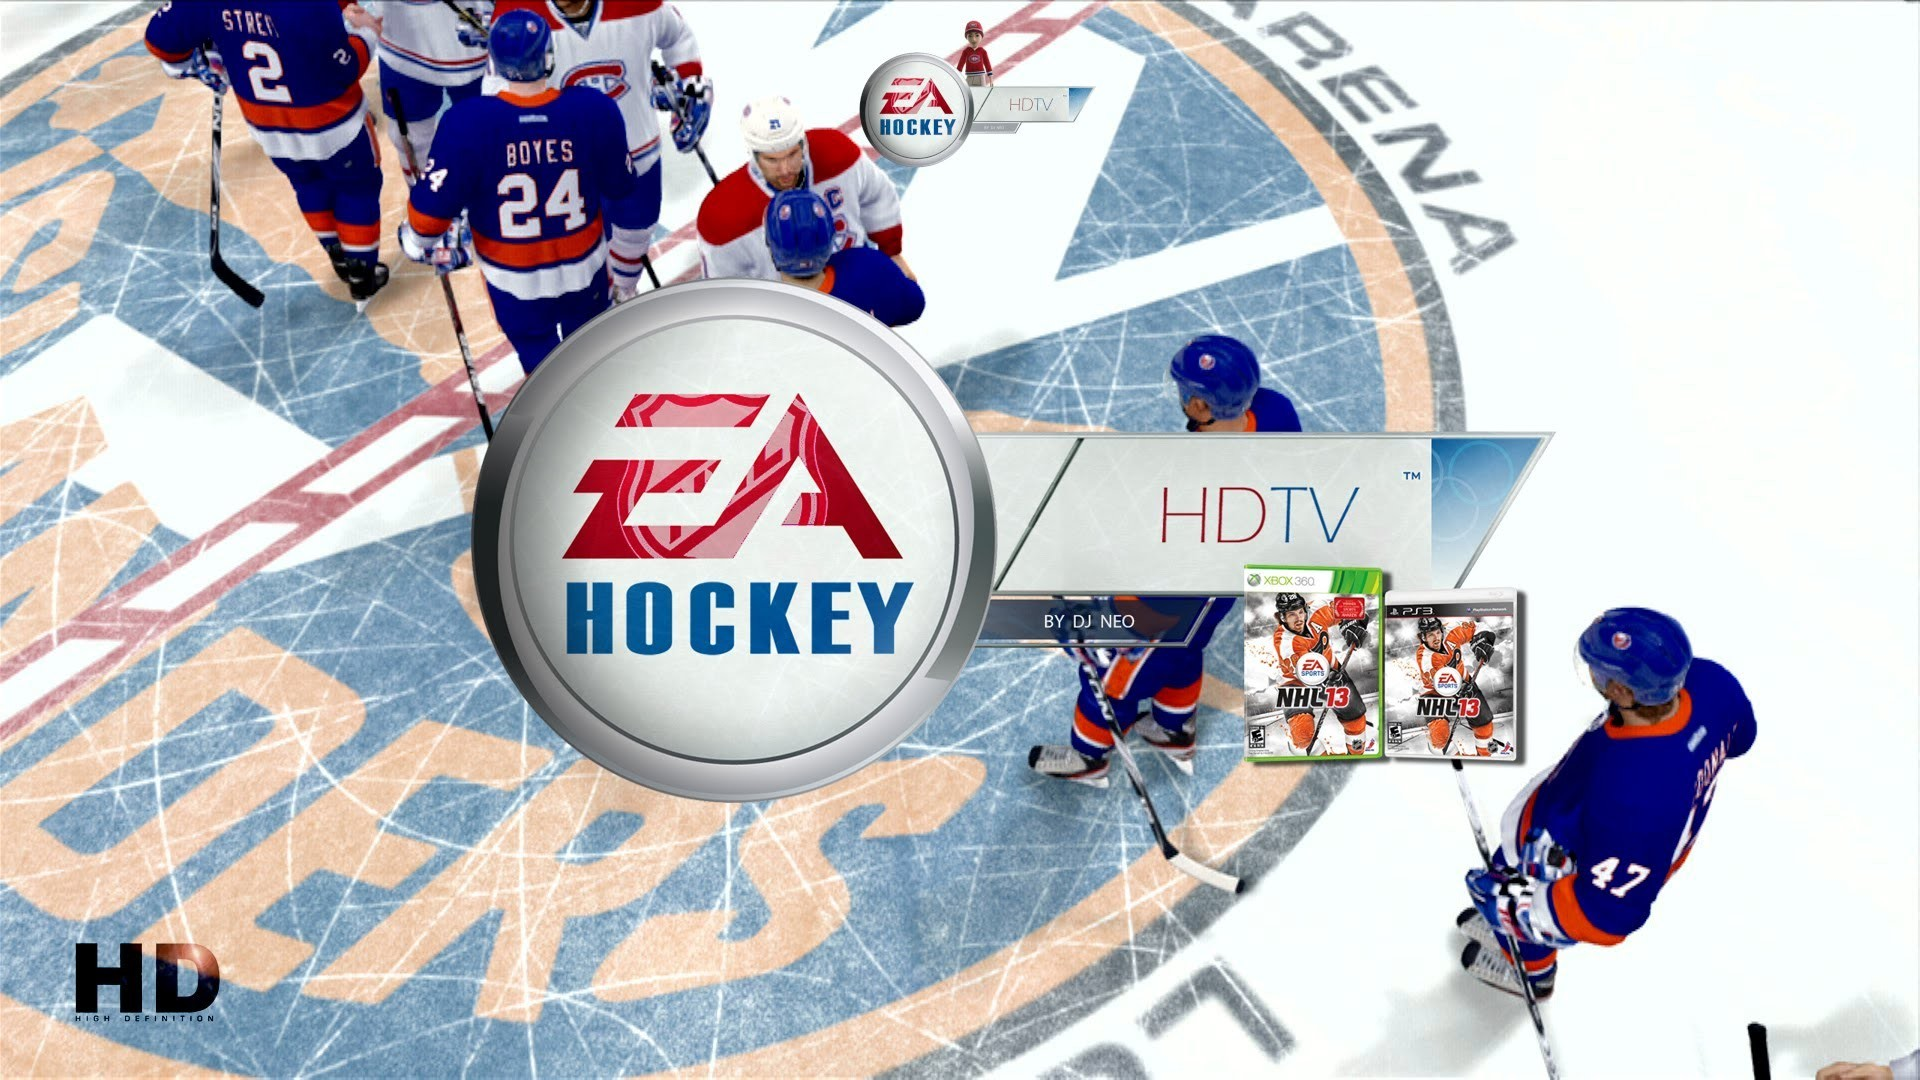 Res: 1920x1080, NHL 13 2013/14 Playoffs broadcast: Montreal Canadiens v.s. New York  Islanders (1080p) - YouTube